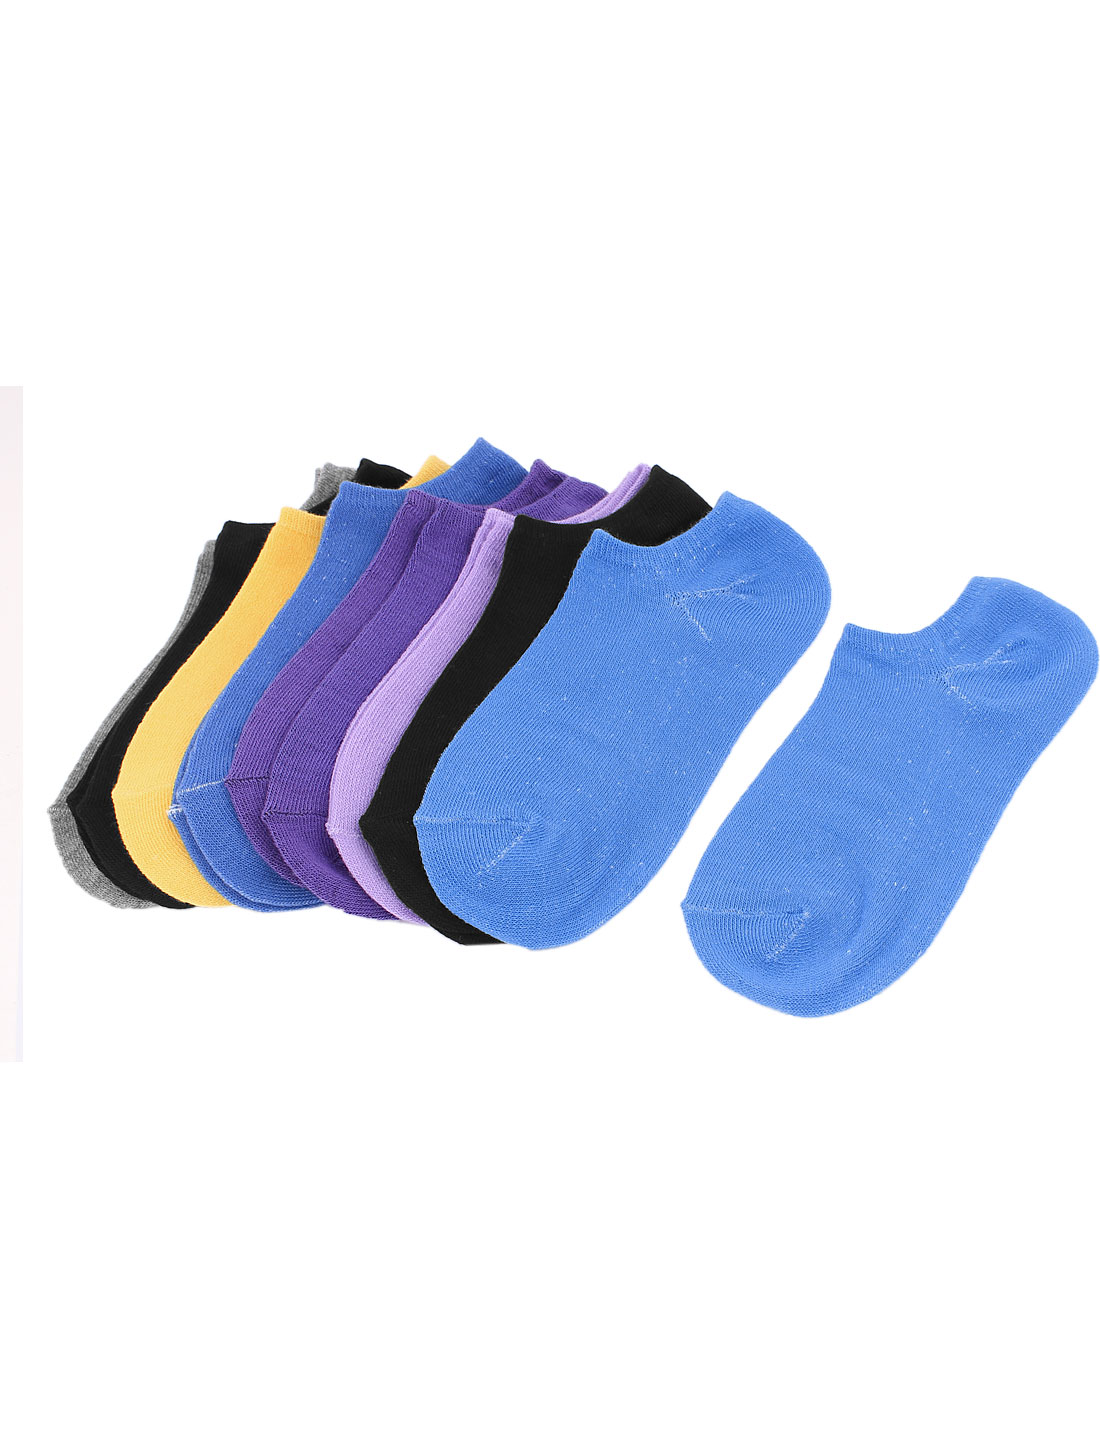 Women Stretchy Pure Cuff Short Low Cut Ankle Hosiery Socks Teal 8 Pair